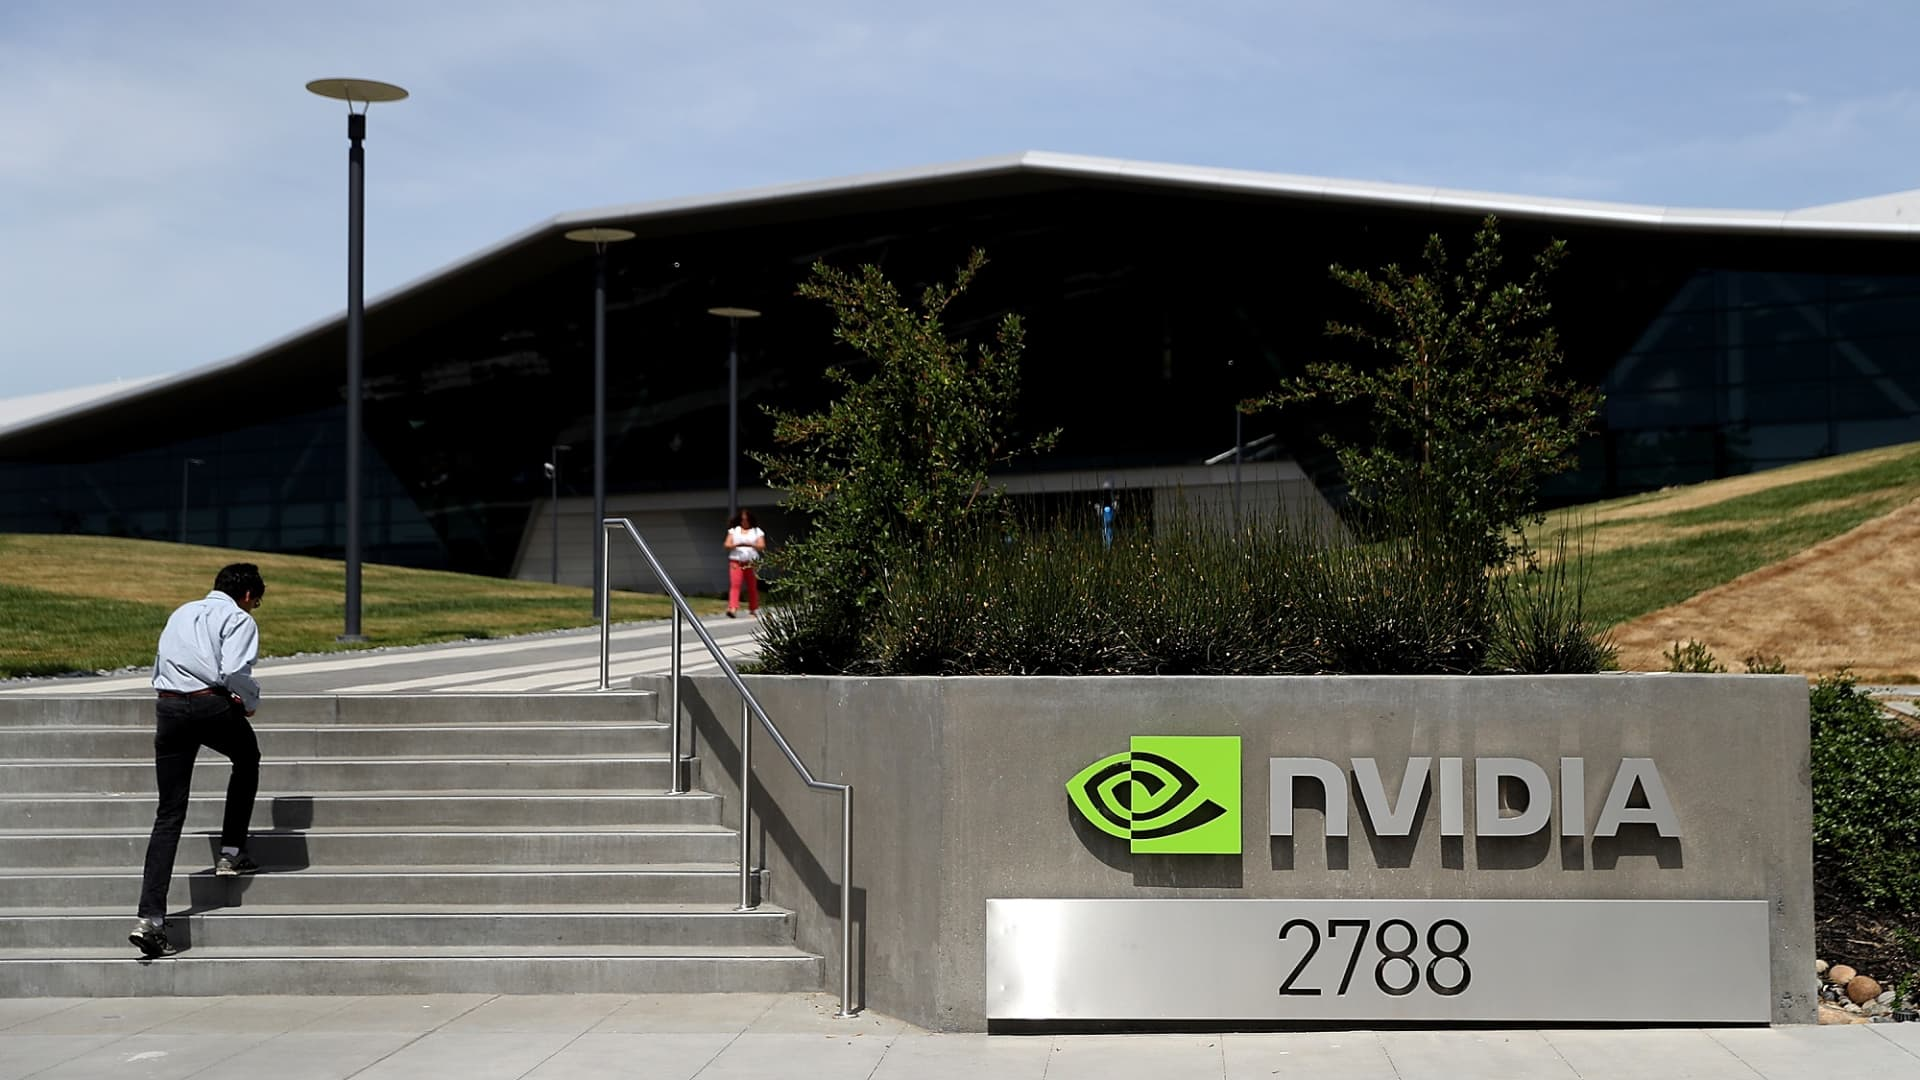 A sign is posted in front of the NVIDIA headquarters on May 10, 2018 in Santa Clara, California.